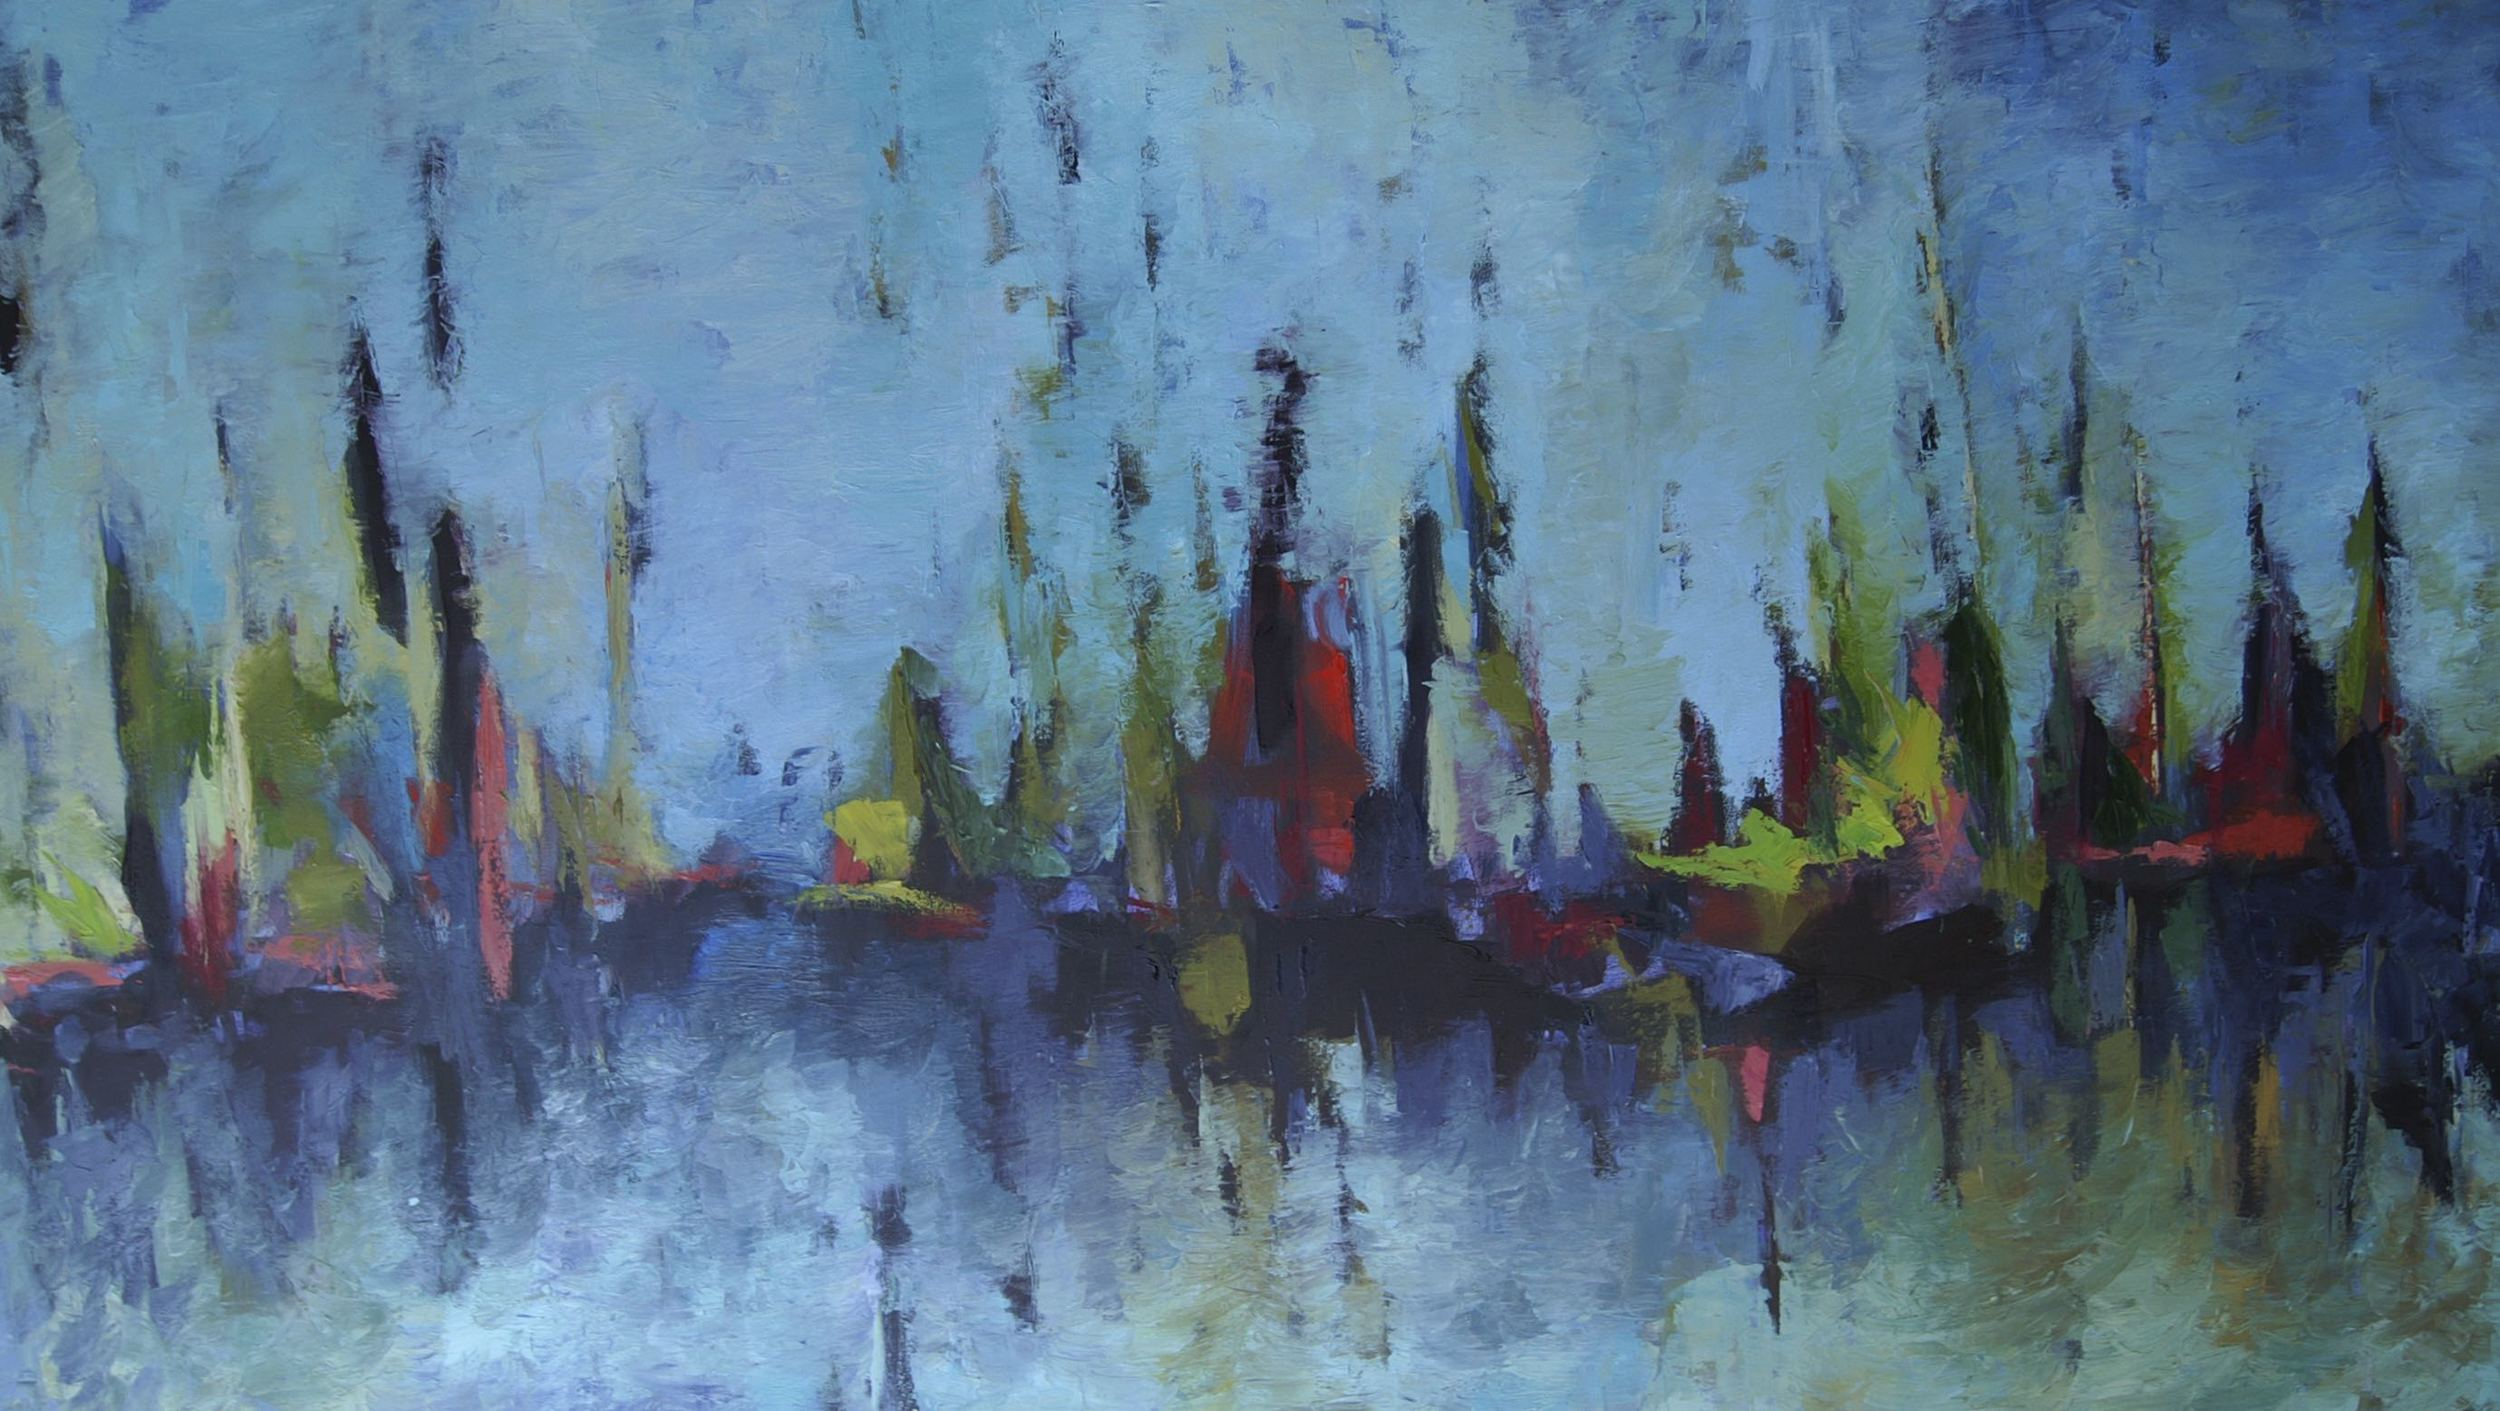 Congaree (36x60 Canvas) - Sold